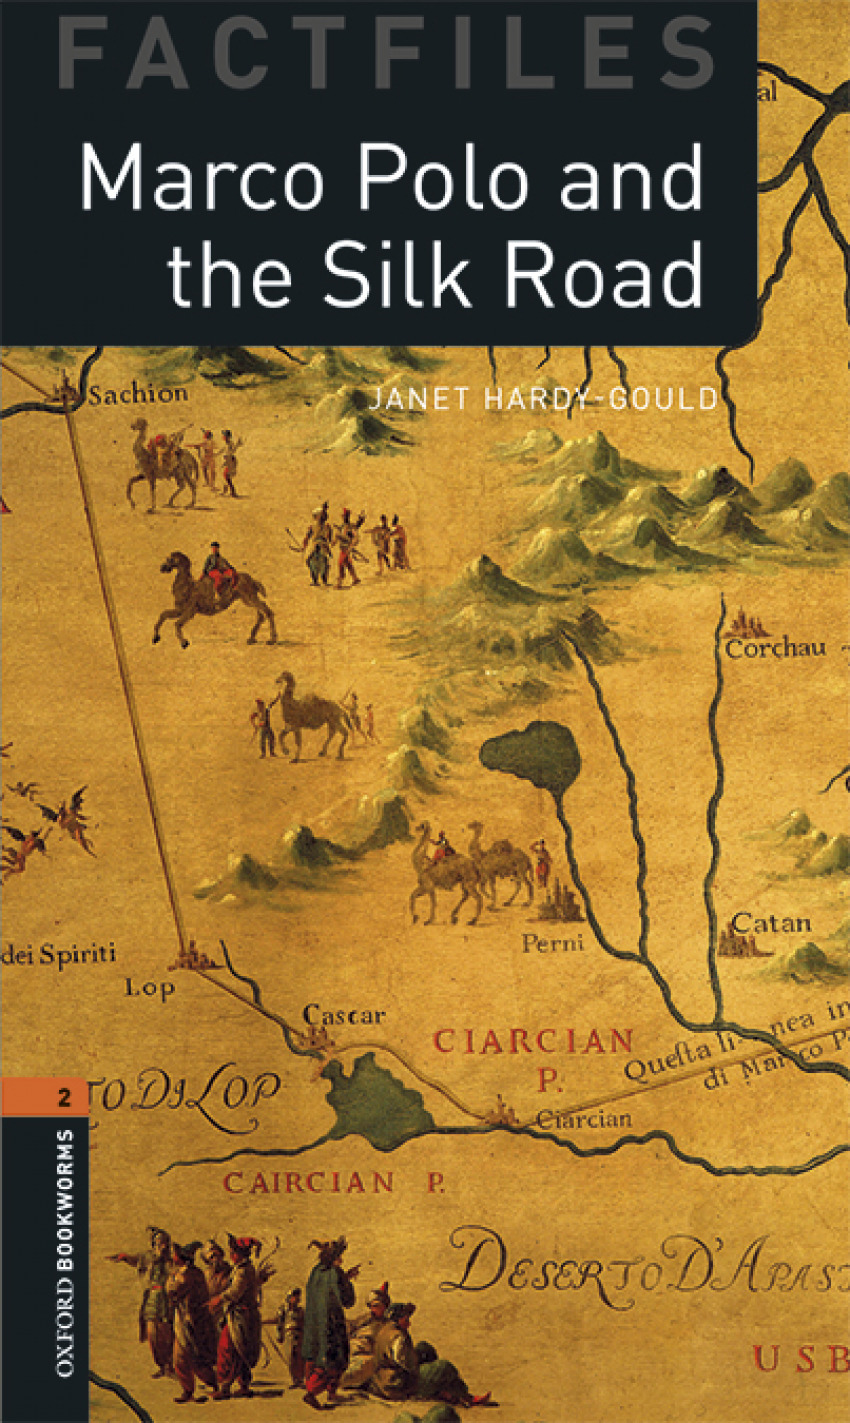 Oxford Bookworms Factfiles 2. Marco Polo and the Silk Road M